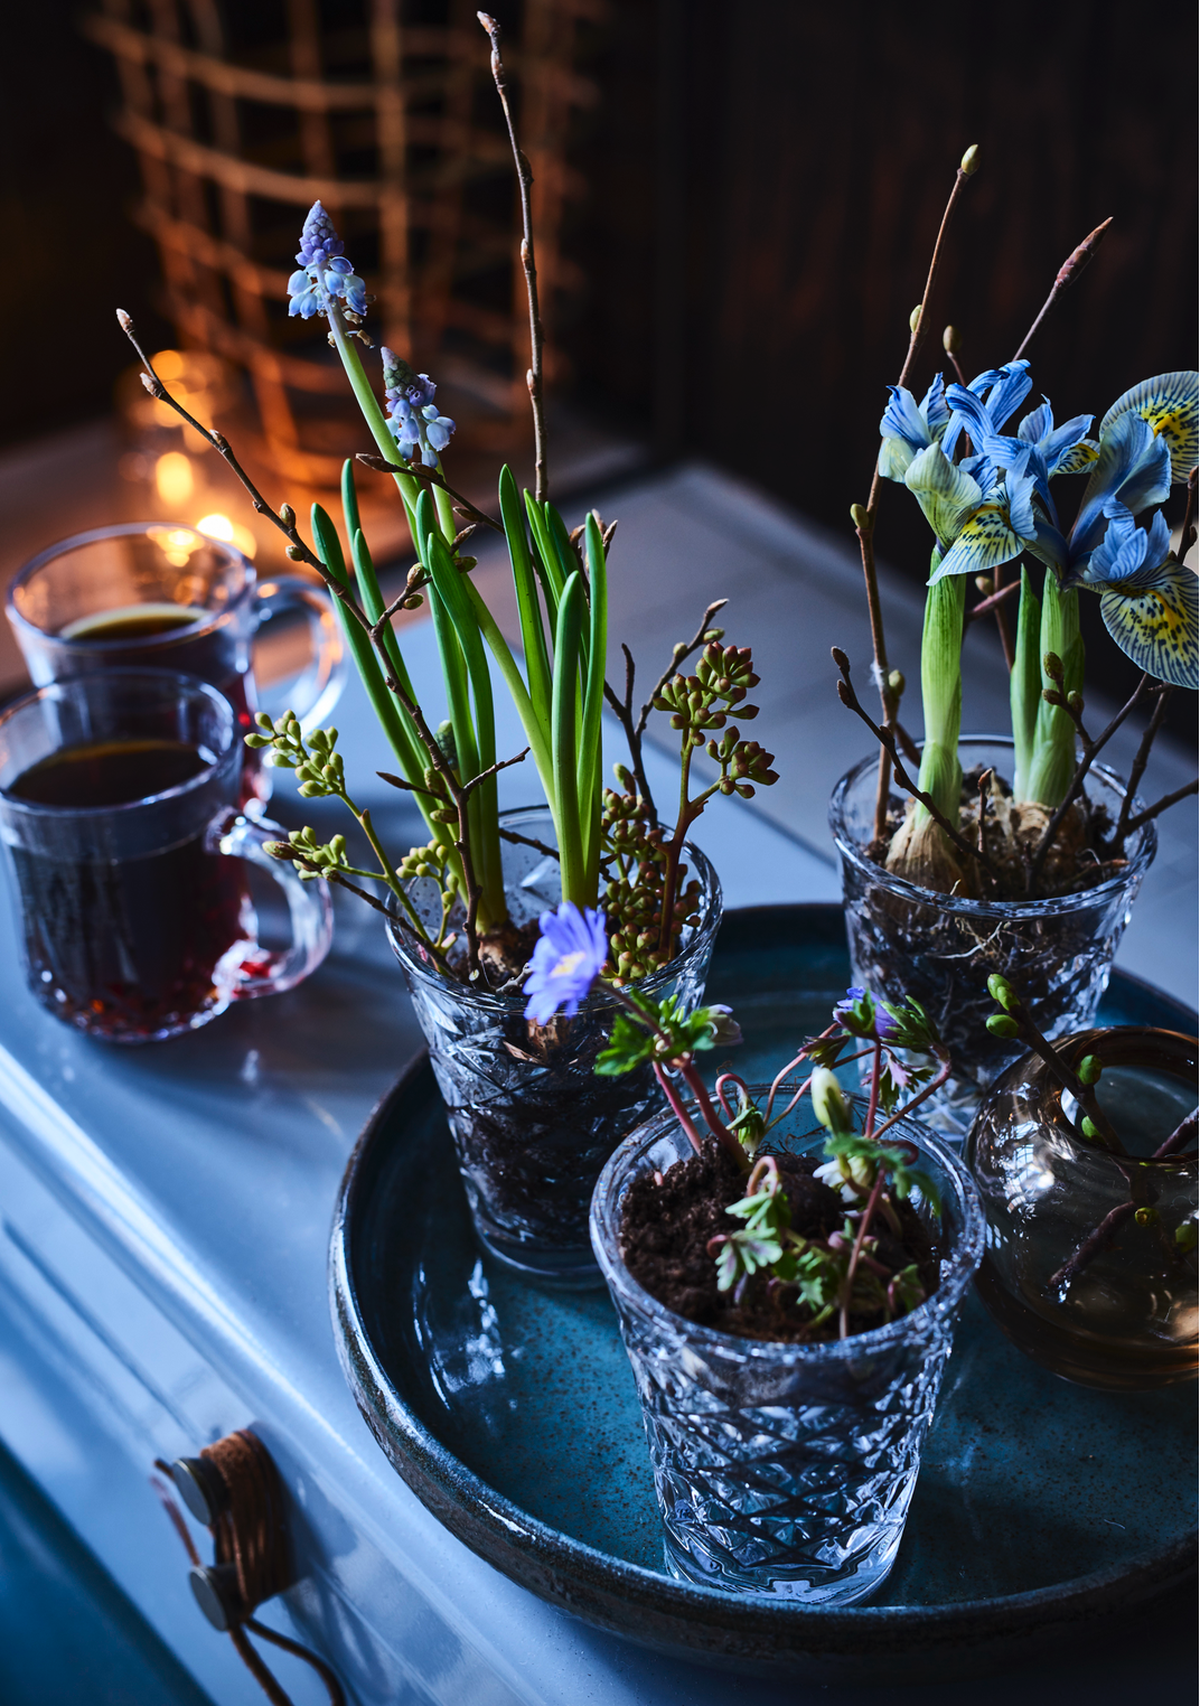 Pernille Albers - Nick Degn Fotografi Isabellas magasin - decorate with flowers and nordic design